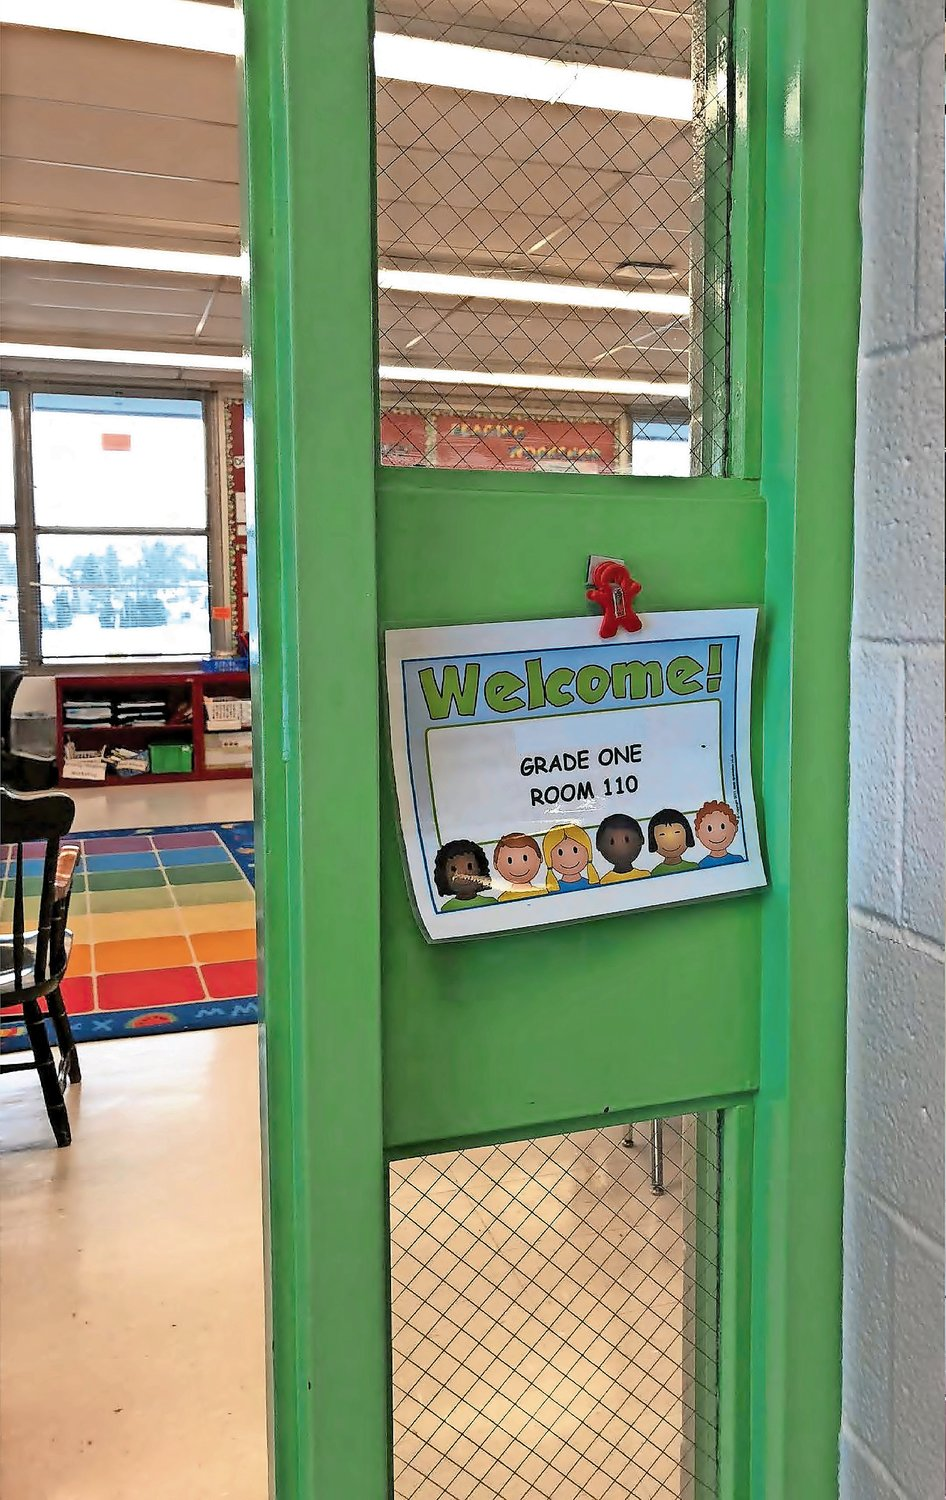 The windows in the doors at Gribbin Elementary School, above, are too large to offer enough protection against intruders.